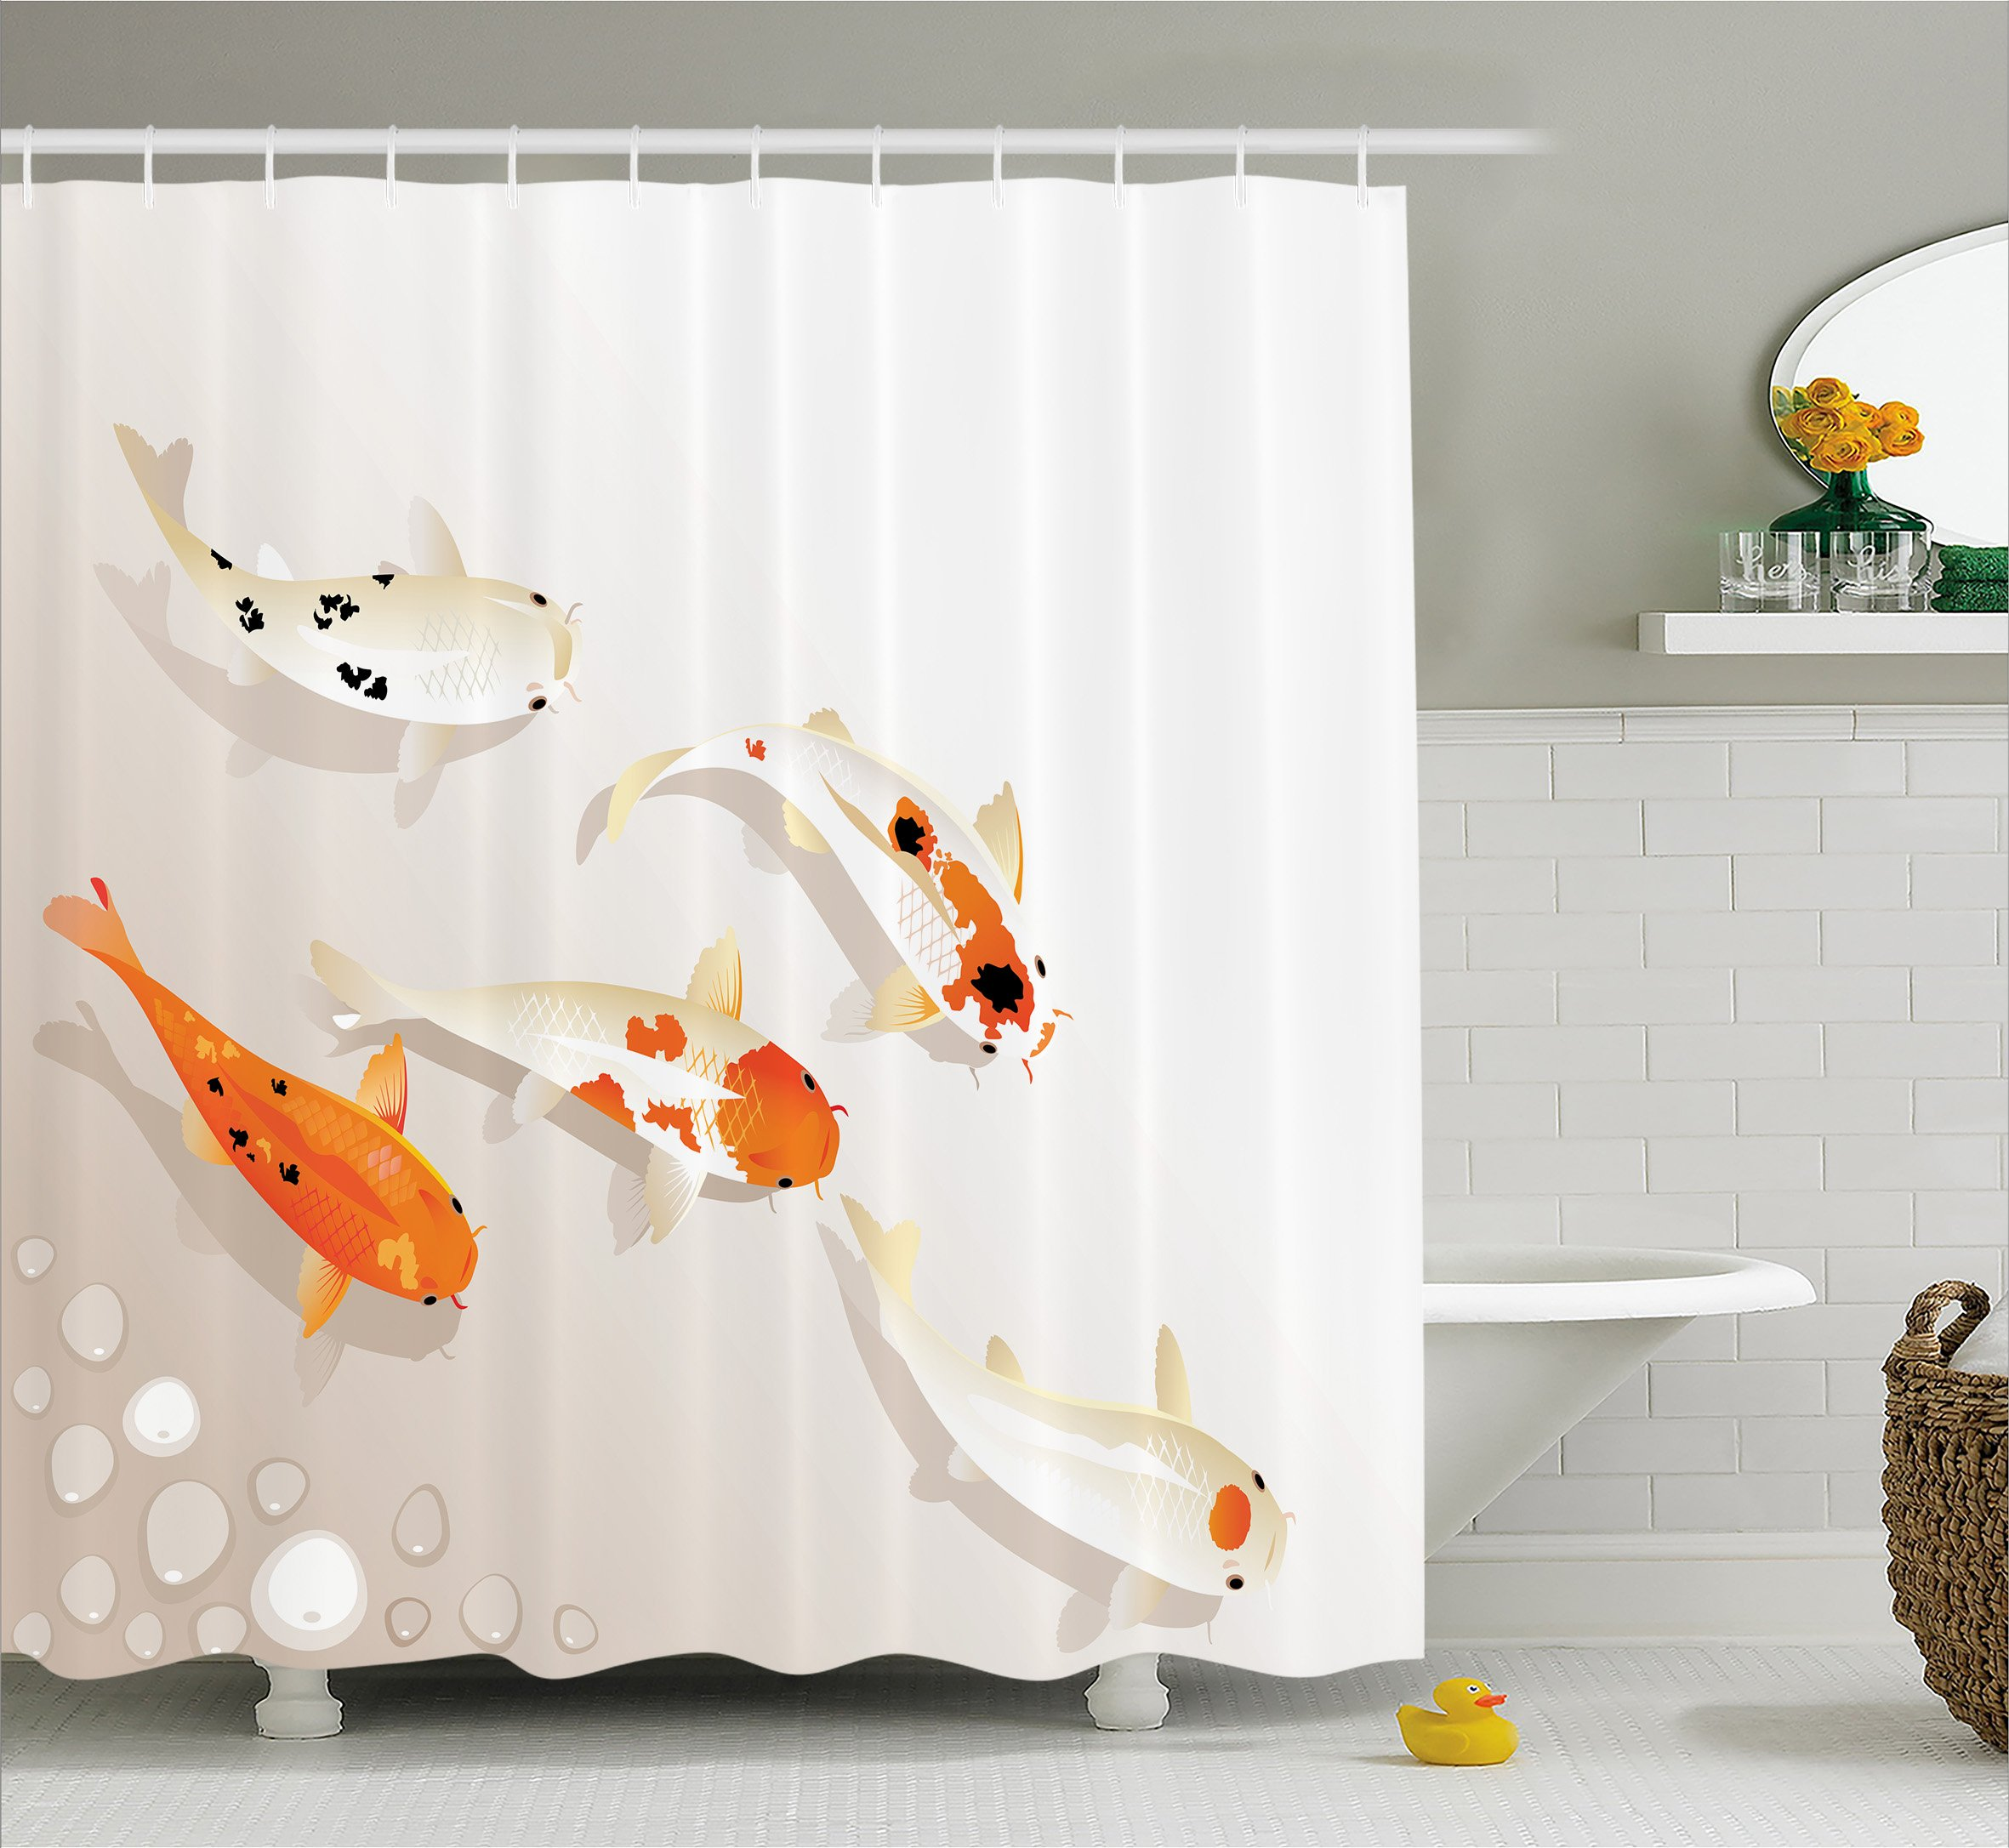 Ambesonne Ocean Animal Decor Shower Curtain, Traditional Asian Sacred Spotty Koi Carps Oriental Sign of Love Zen, Fabric Bathroom Decor Set with Hooks, 70 Inches, Orange Beige by Ambesonne